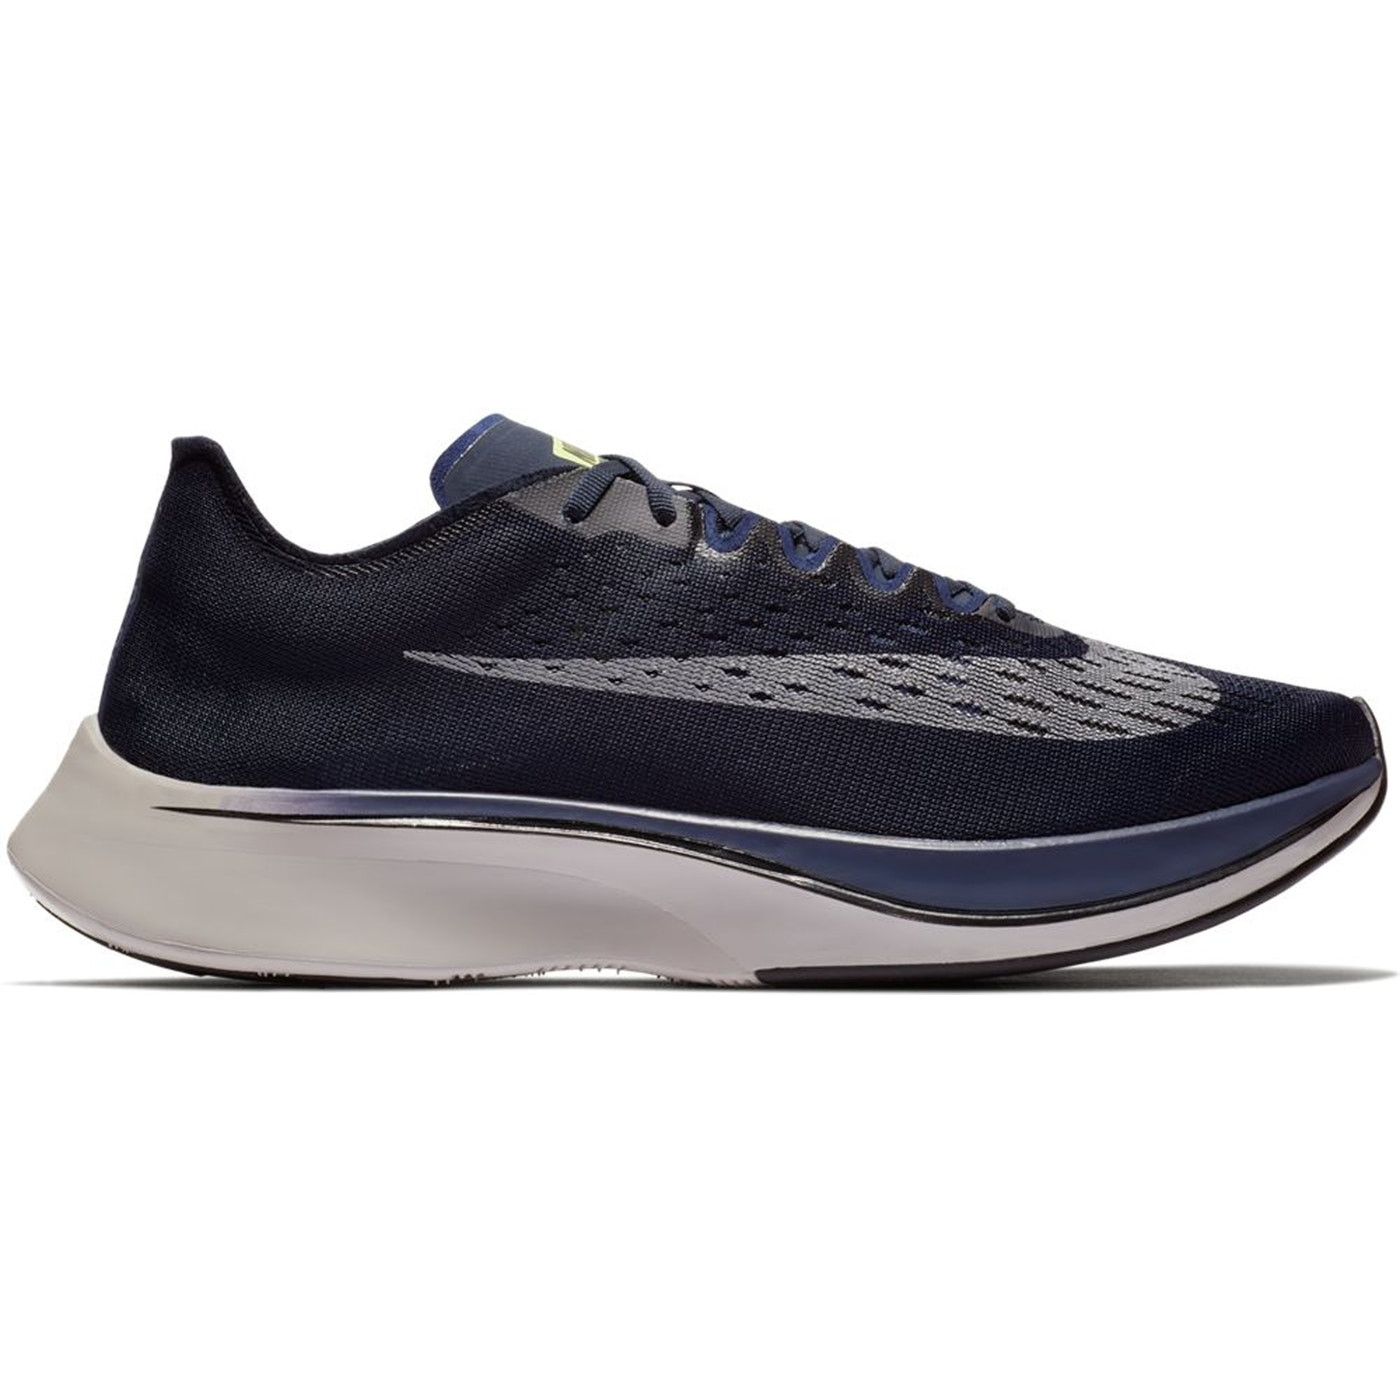 29e4c49a8ca2 Nike Zoom Vaporfly 4% - Shoe Reviews - LetsRun.com